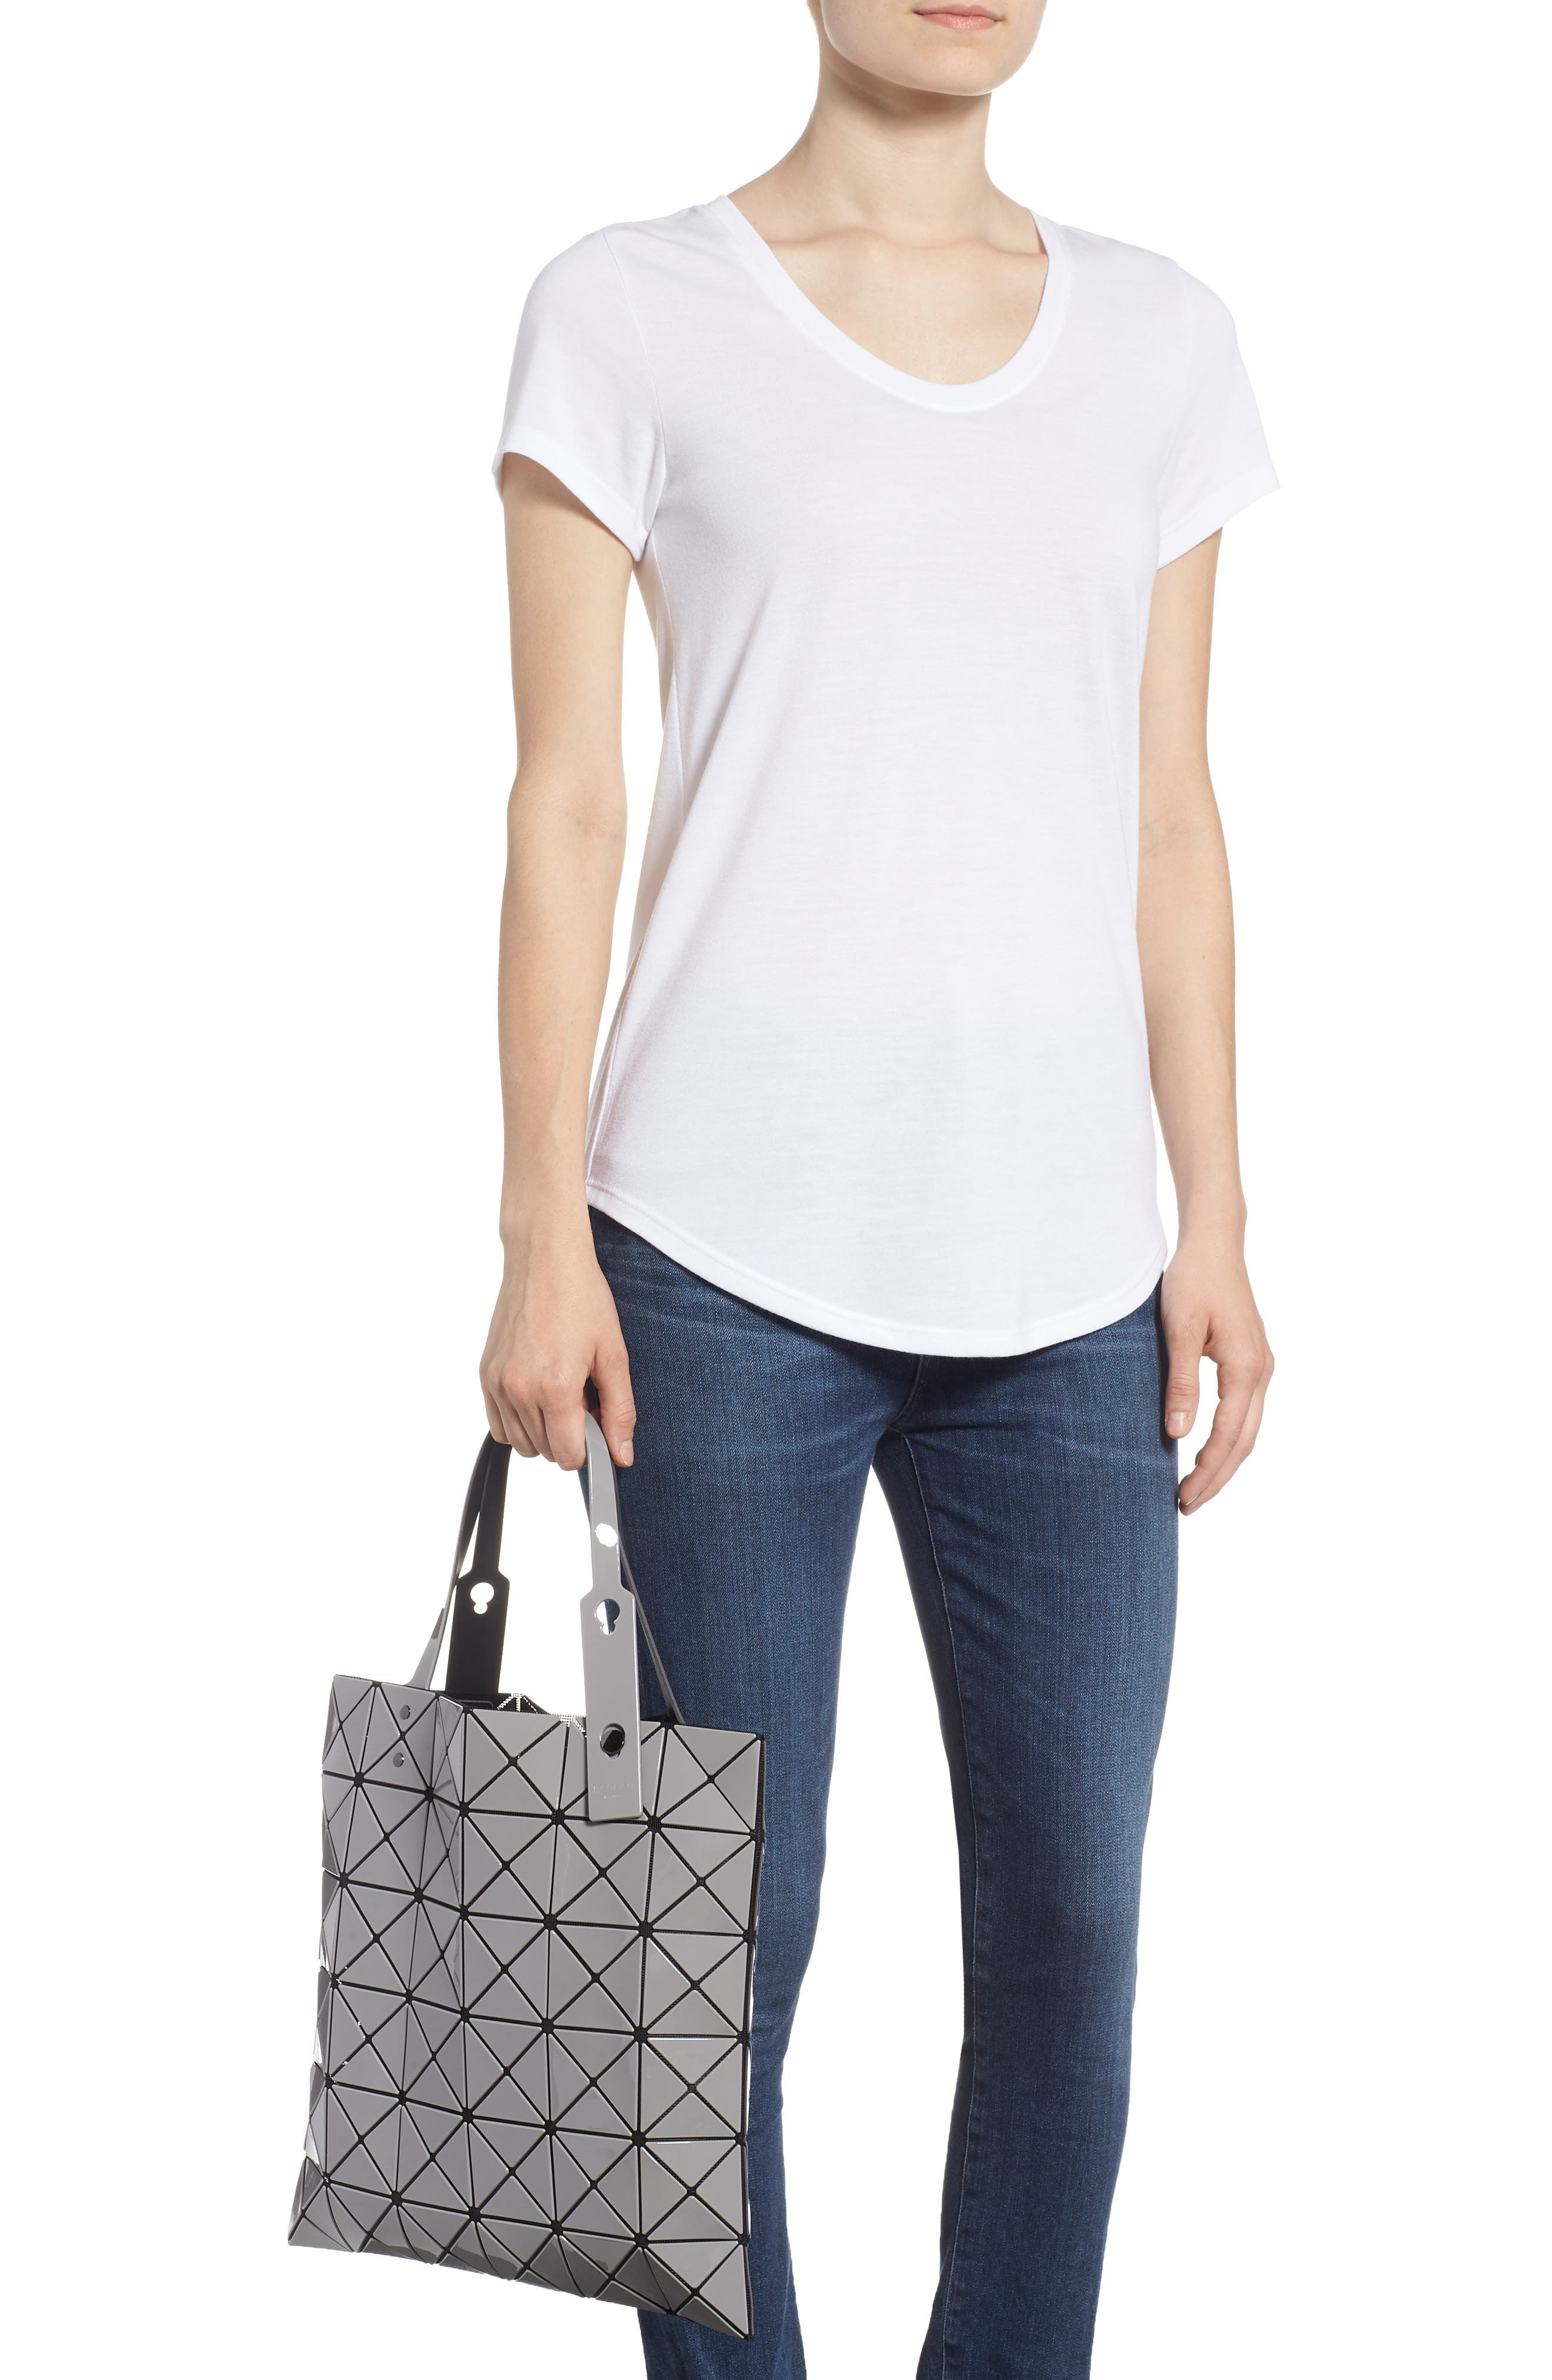 Lucent Two-Tone Tote Bag,                             Alternate thumbnail 2, color,                             LIGHT GRAY/ CHARCOAL